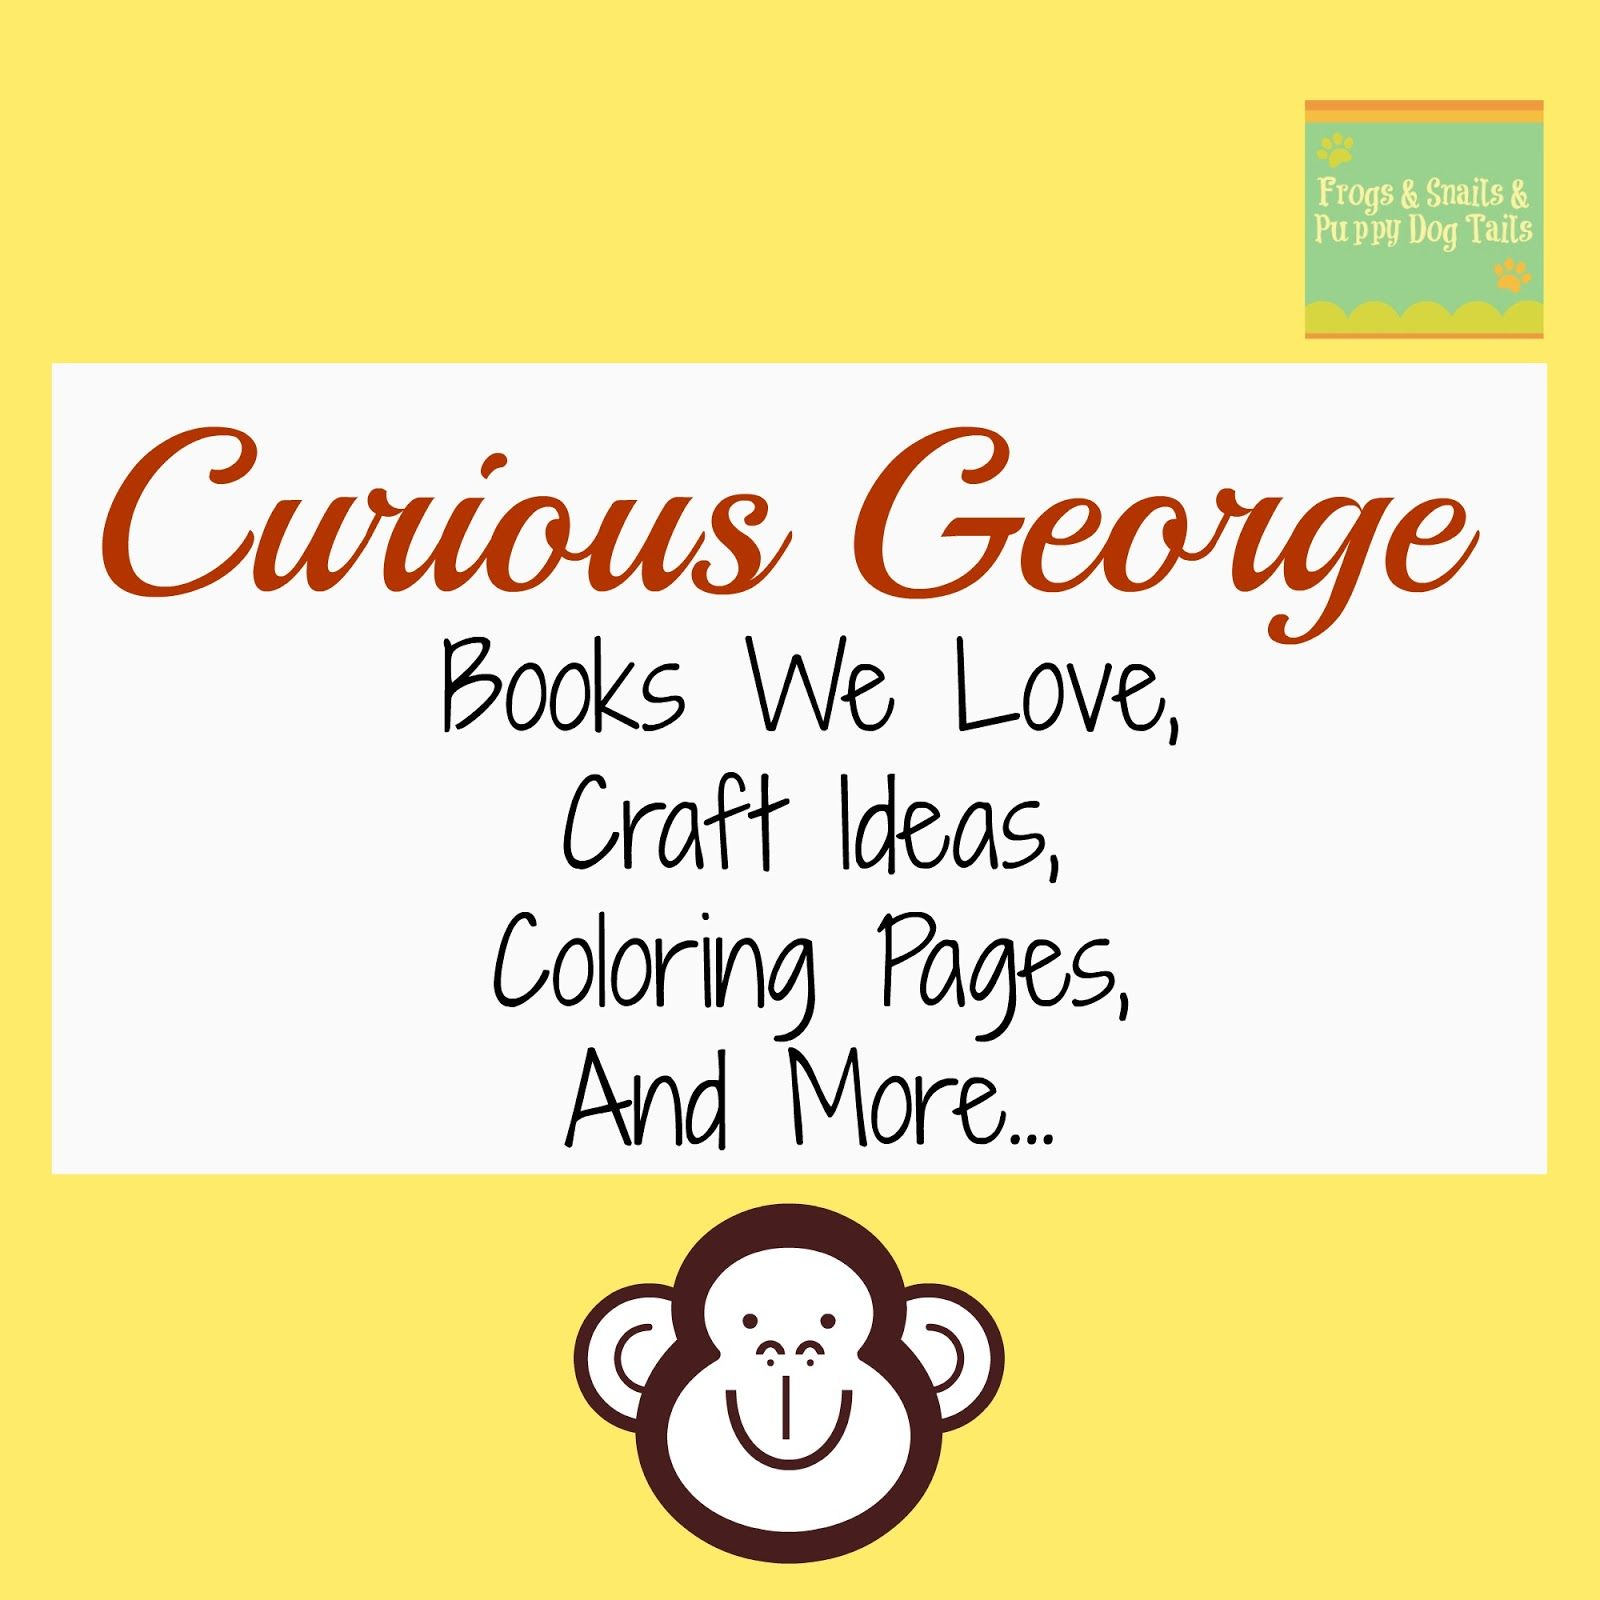 Curious George Books We Love Craft Ideas Coloring Pages